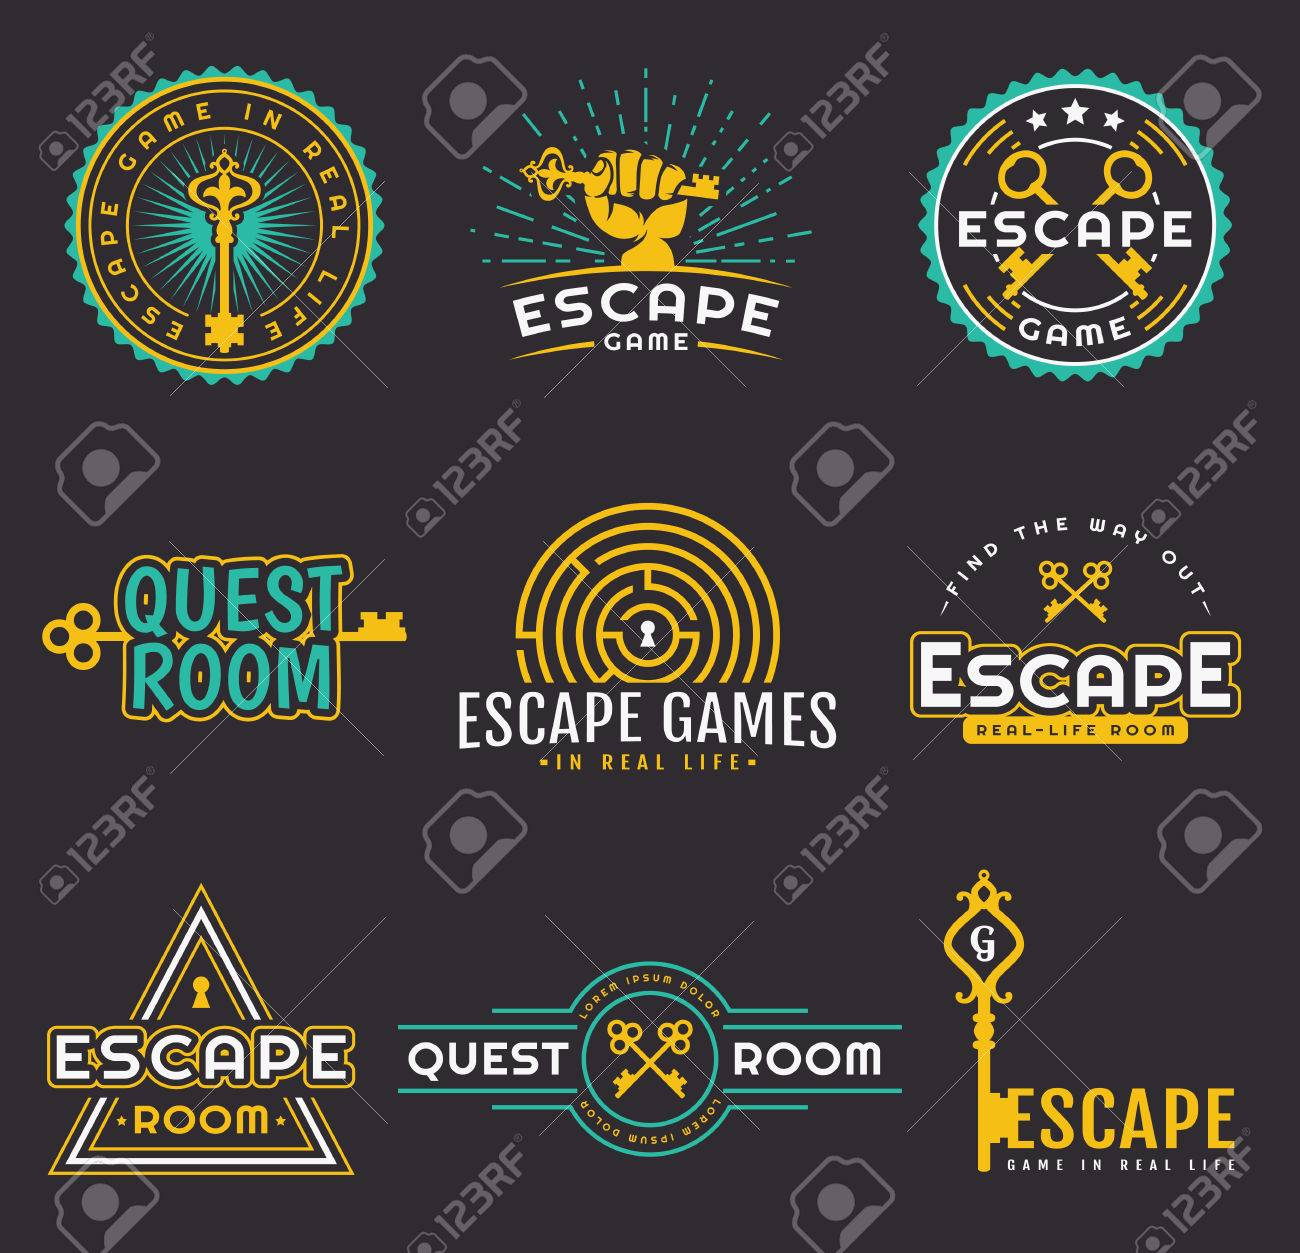 Set of quest room logos templates. Vector badges for real-life escape game design. Collection of emblems isolated on a black background. - 80946191